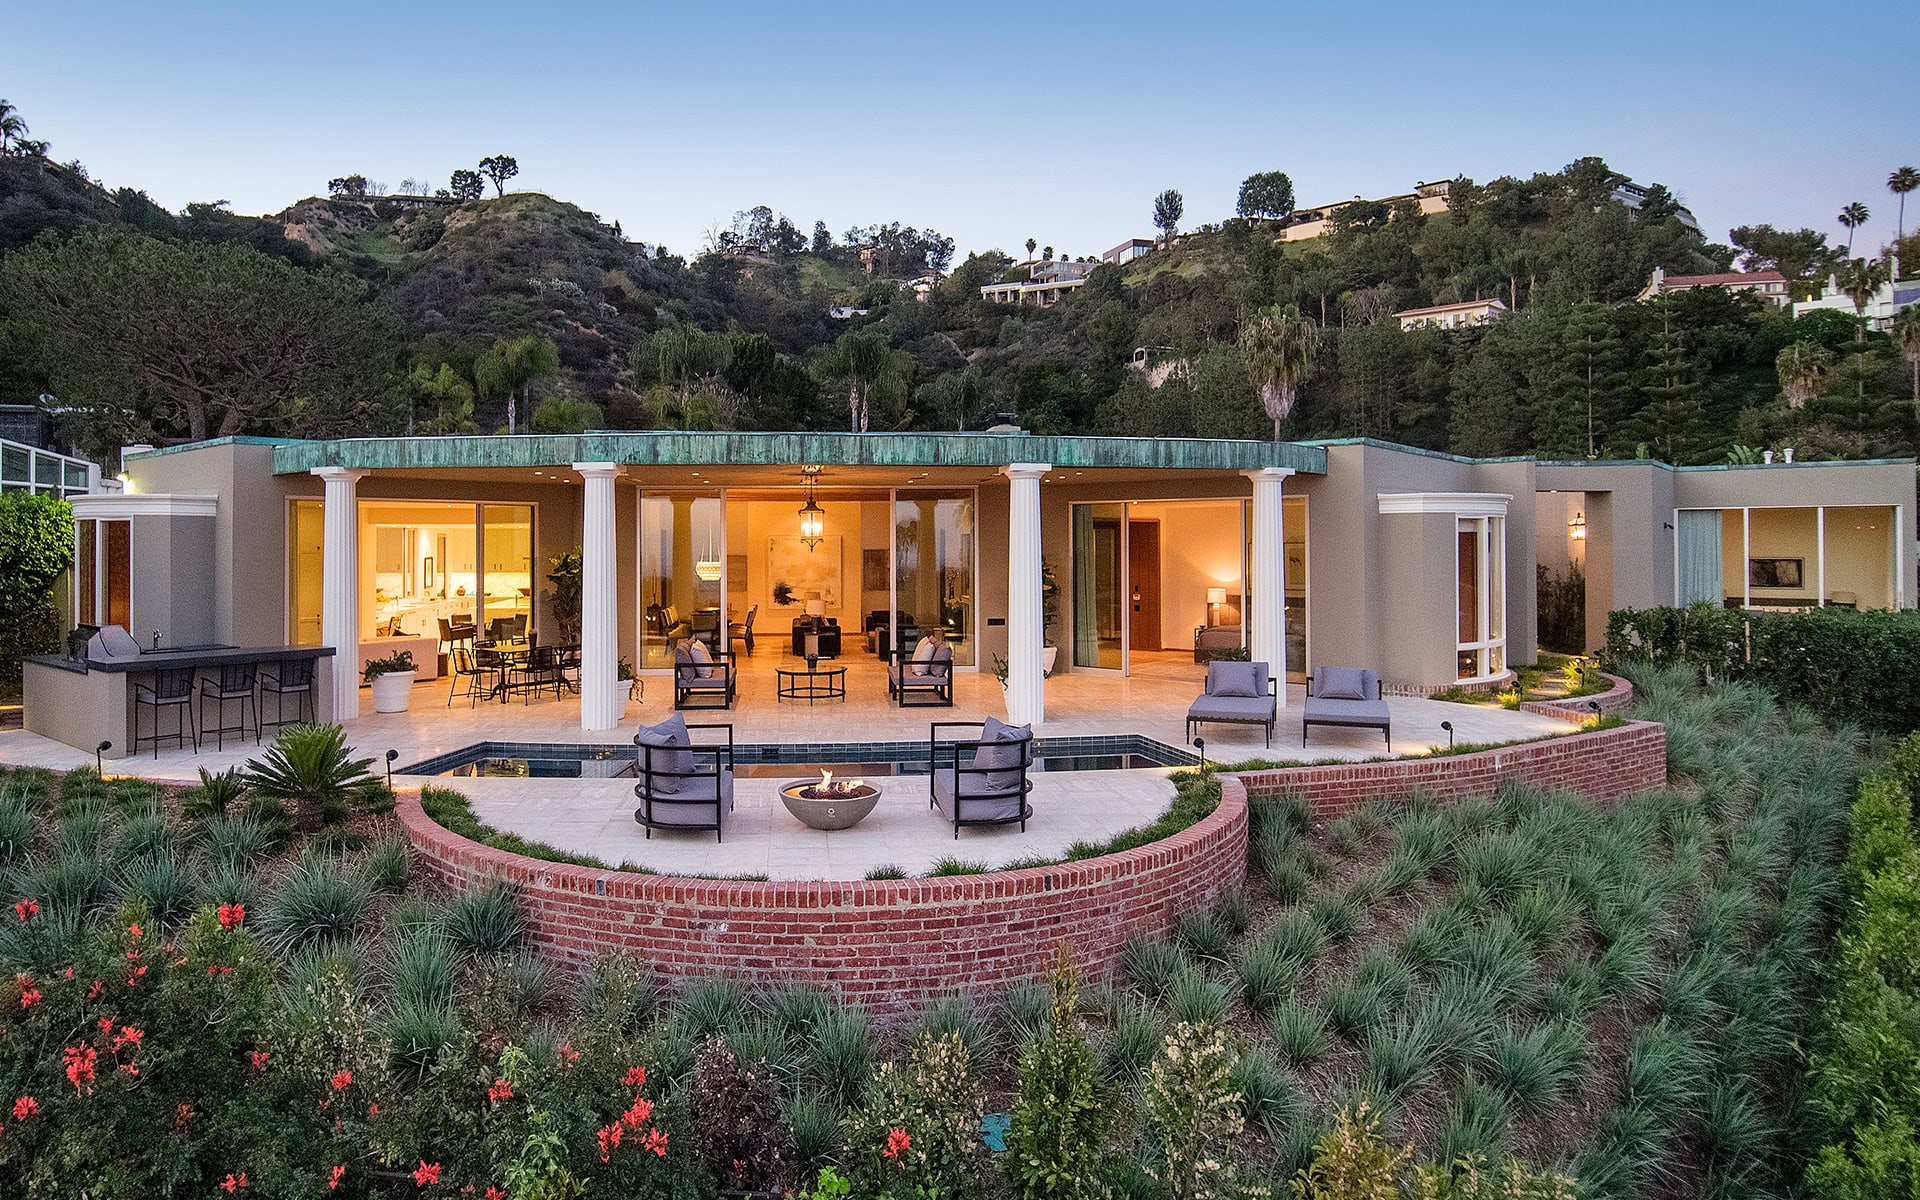 beverly hills real estate and homes for vente | christie's